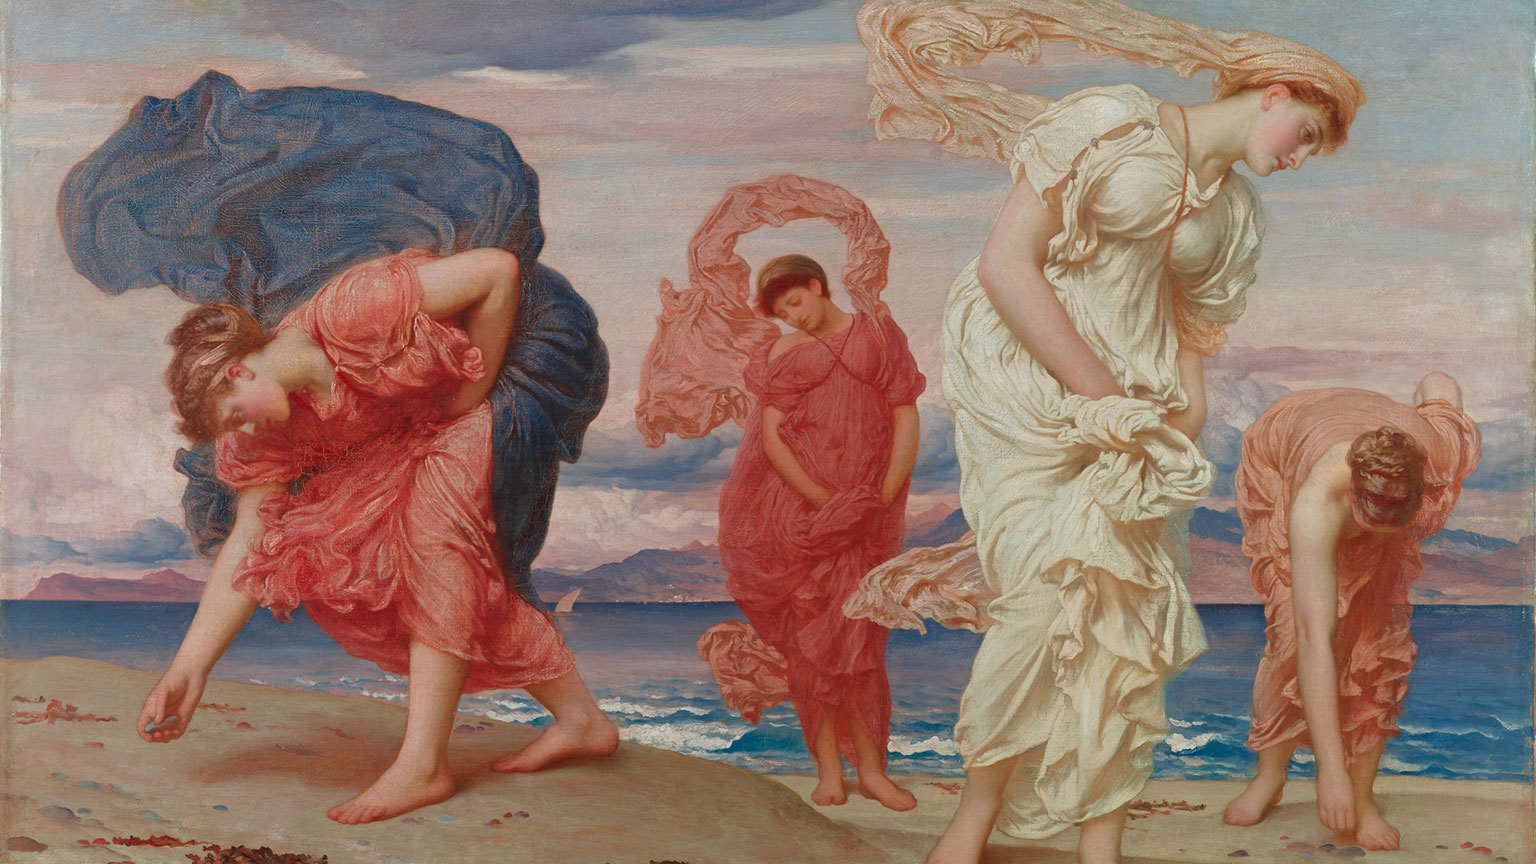 The Big Red Robe - Myths and Reality